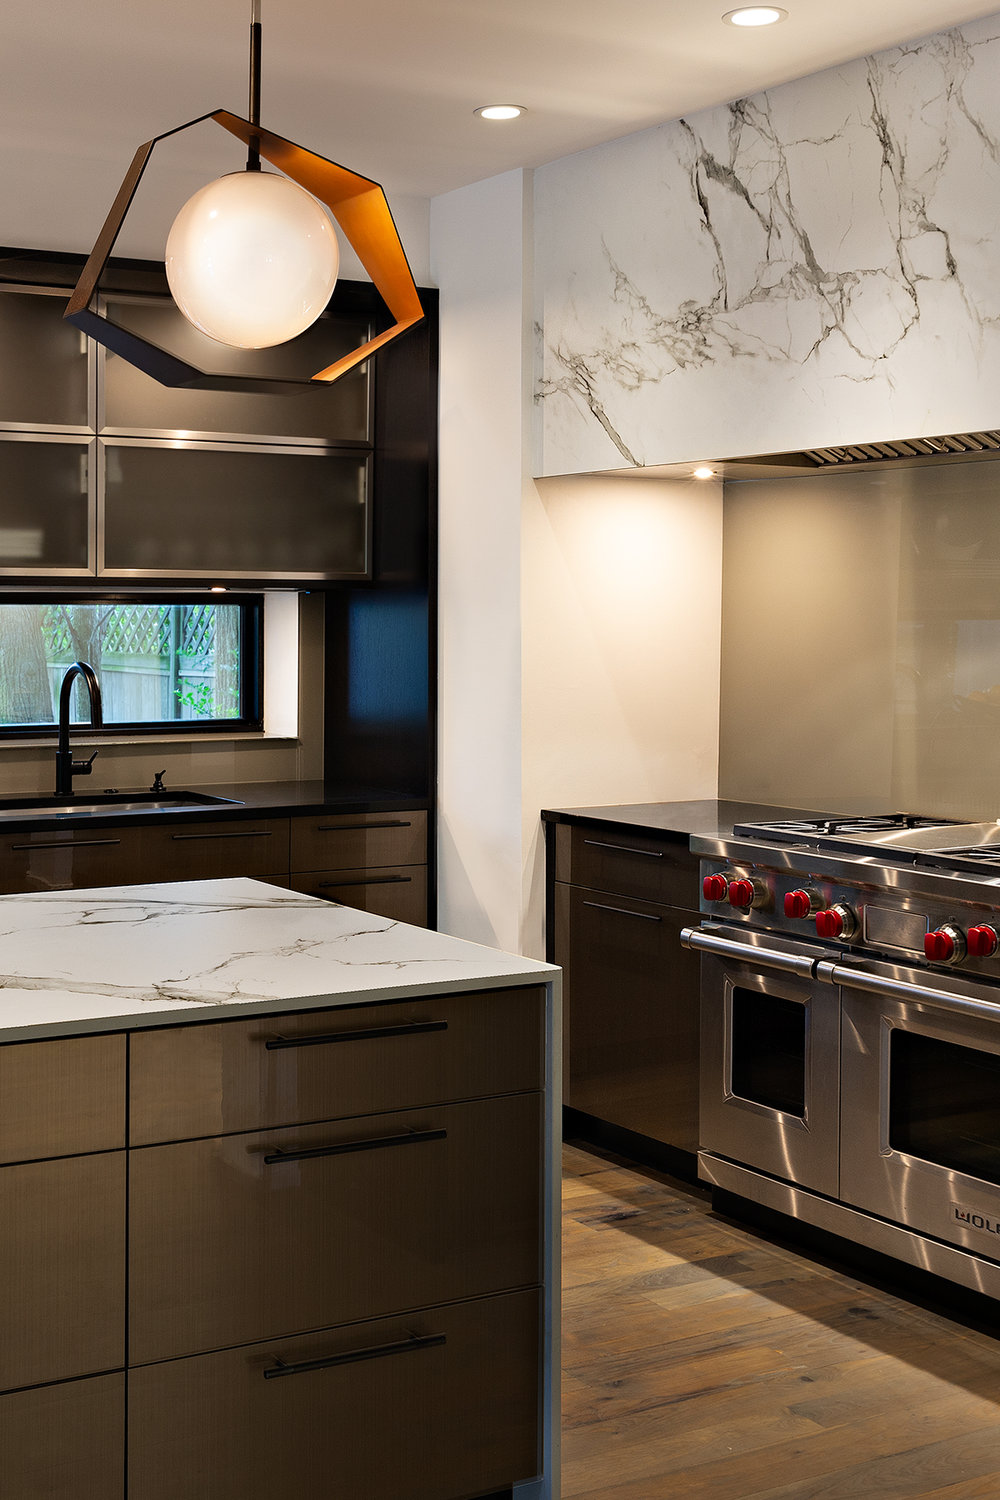 sq-kitchen-1.jpg